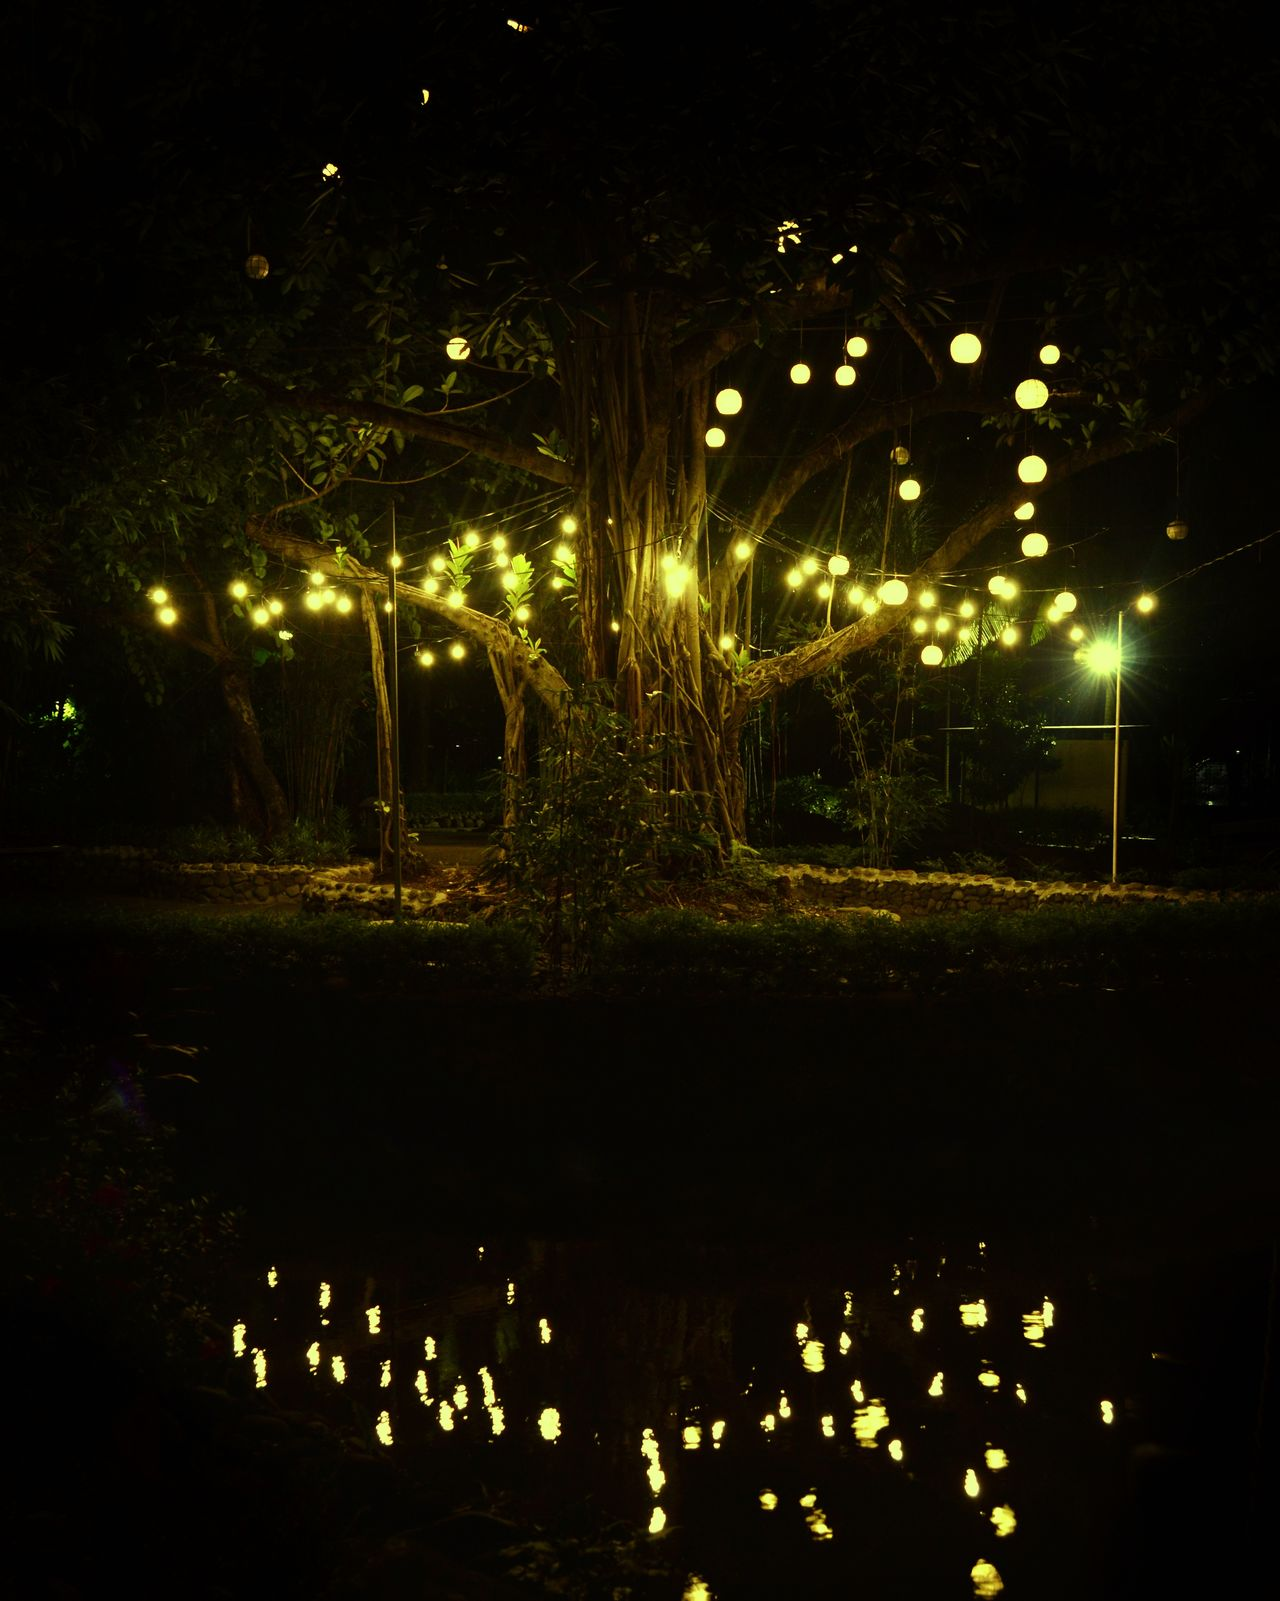 Magical Tree in Urban Garden.Tree Full Of Lights Tree Reflection Night No People Outdoors Nature Water Illuminated Feels Like Magic Magical Magical Moment Exeptional Photographs Eye4photography  Hello World Check This Out!